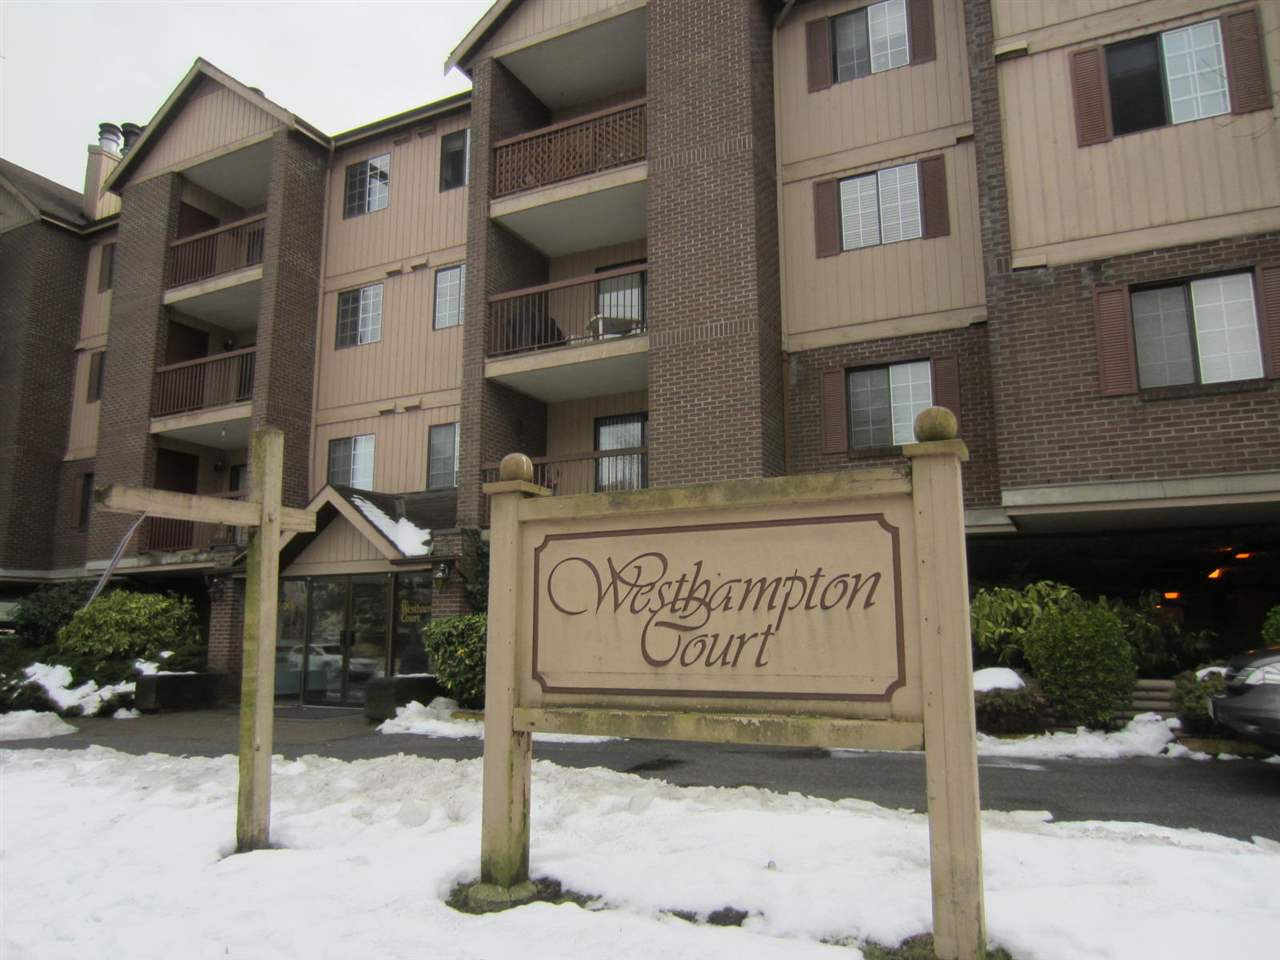 "Main Photo: 329 8500 ACKROYD Road in Richmond: Brighouse Condo for sale in ""WESTHAMPTON COURT"" : MLS®# R2138634"